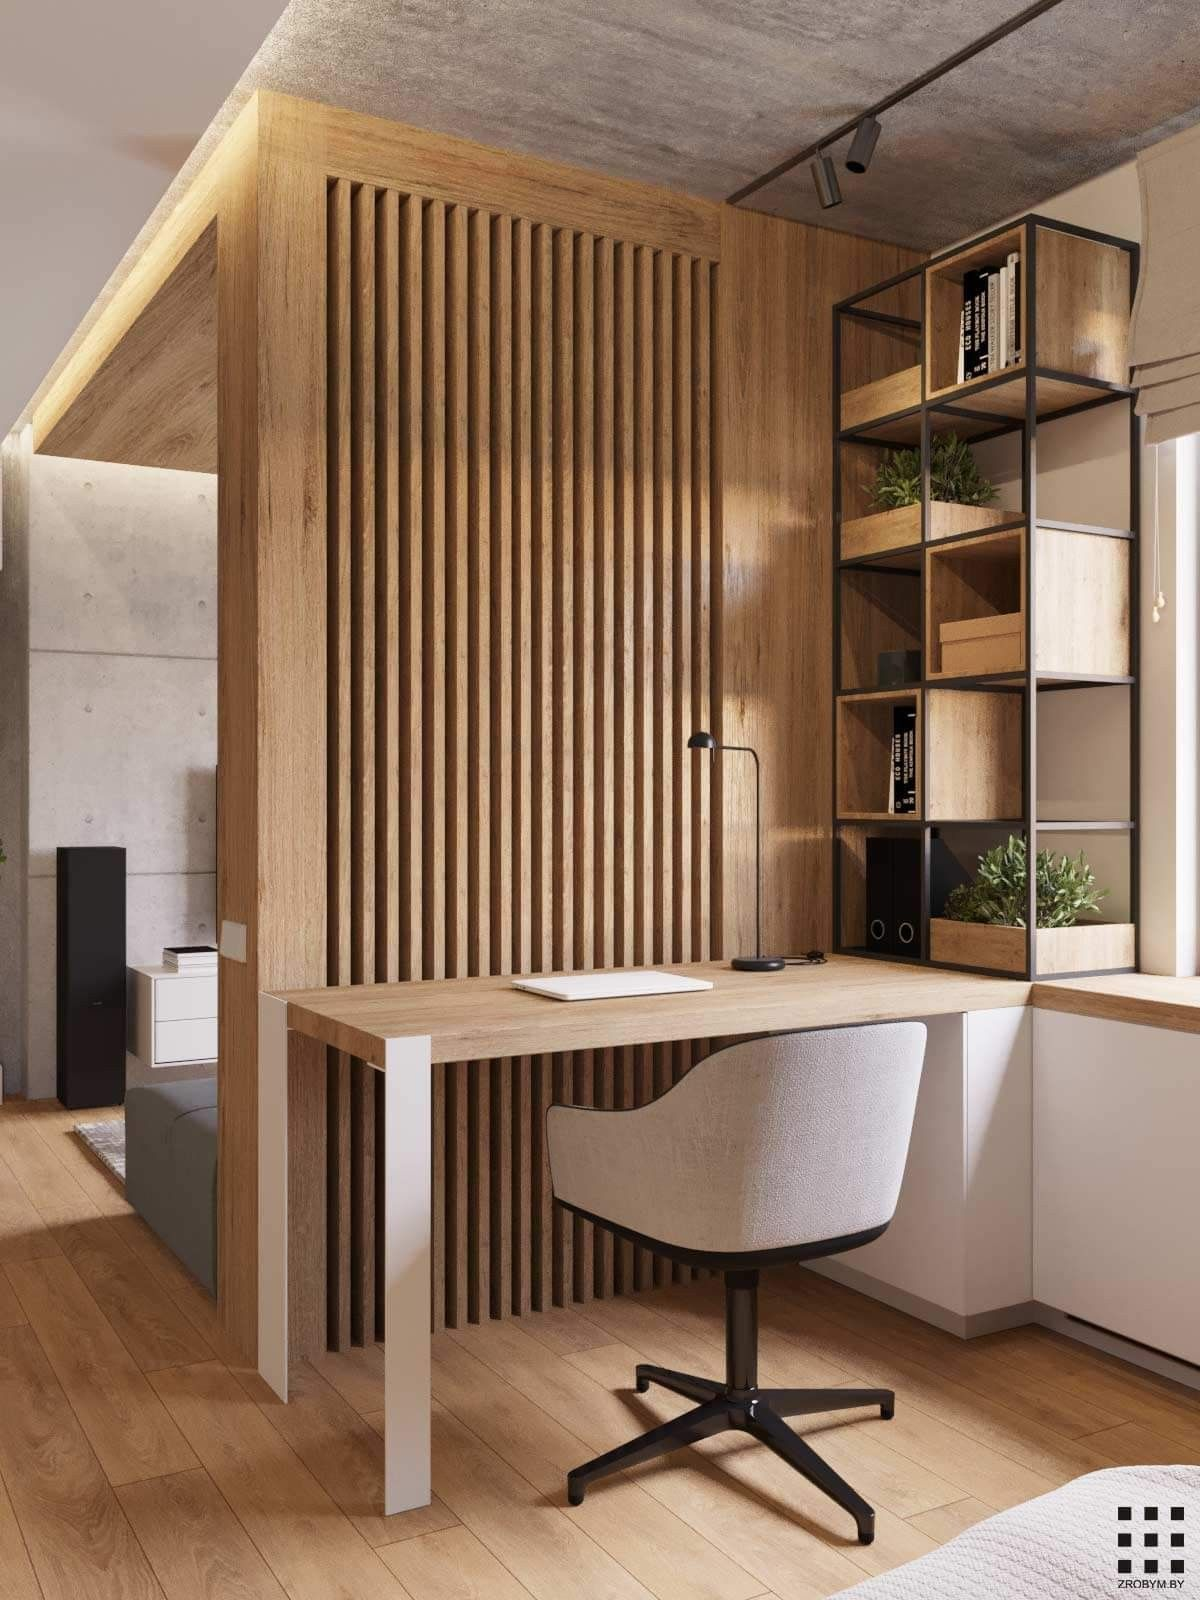 Vertical Slat Wall In Natural Wood Finish Separates The